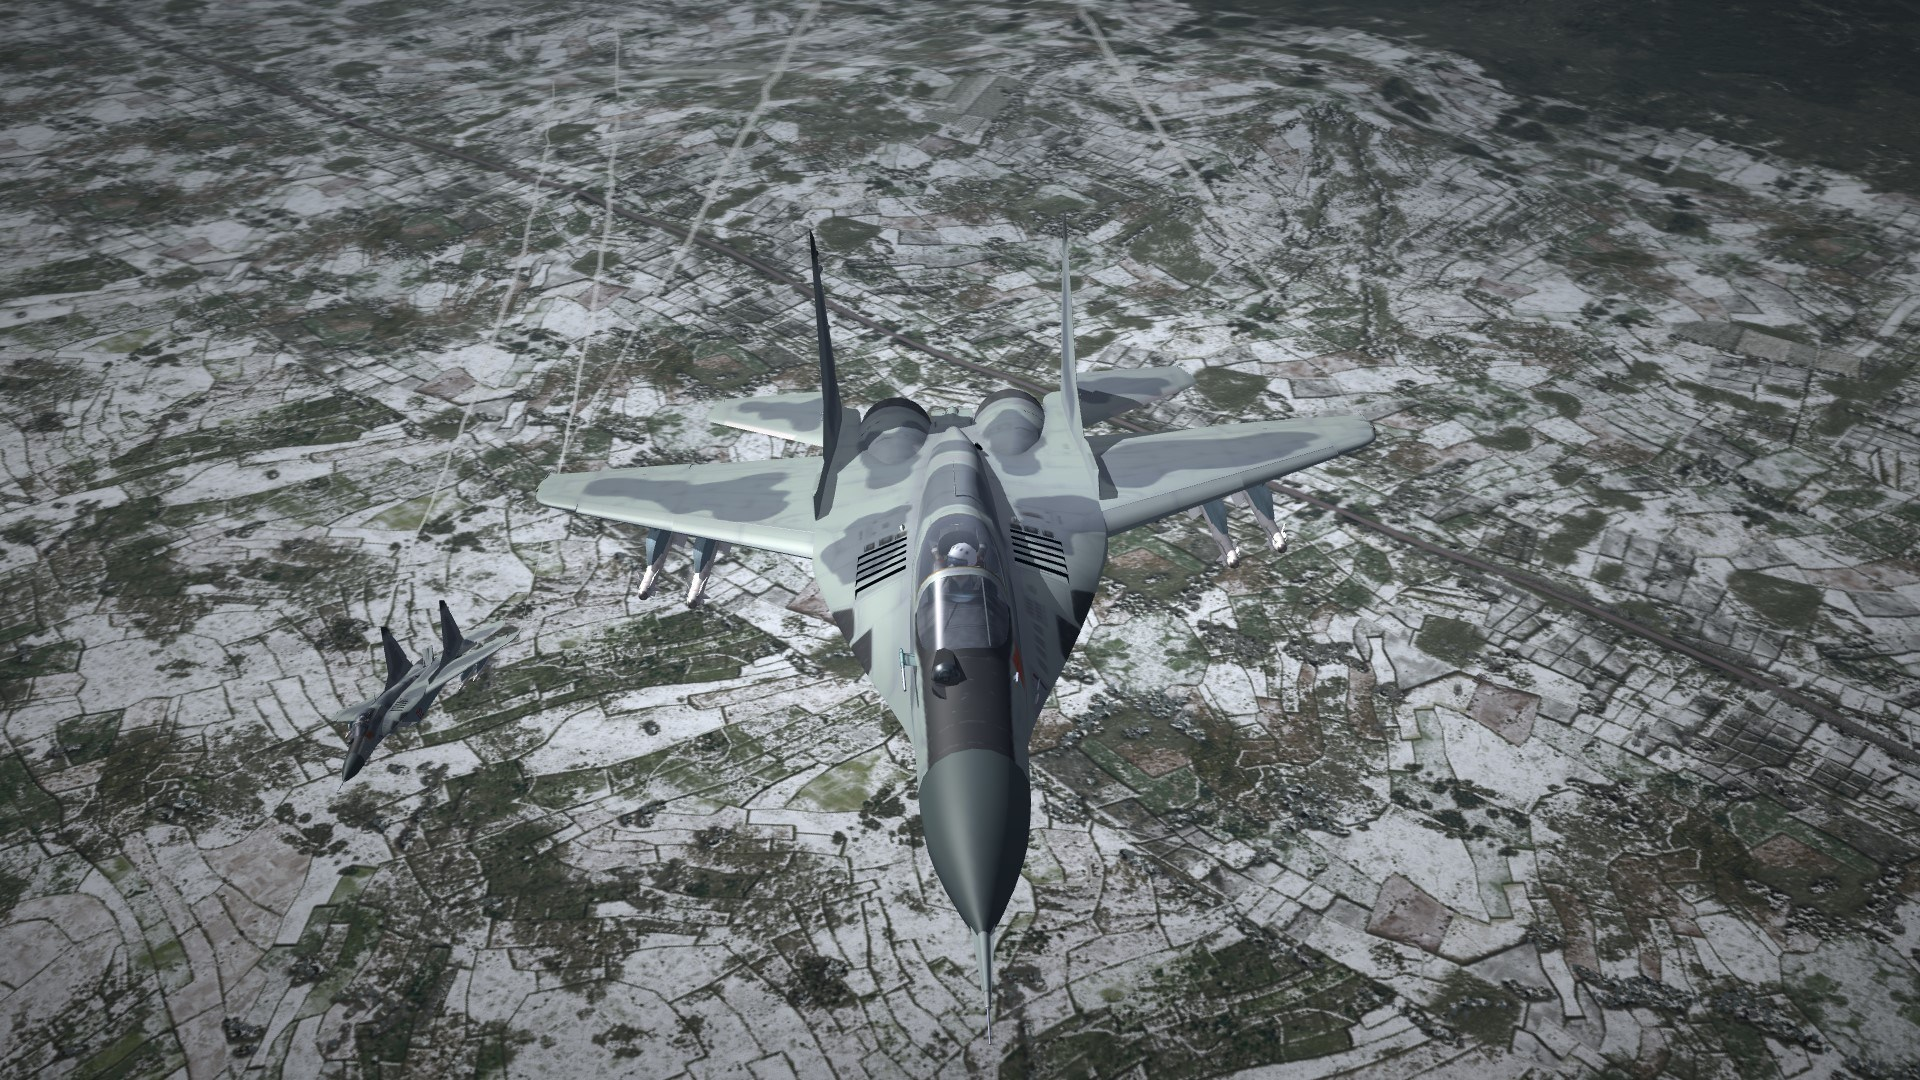 NKorea People's Air Force New Skin for MIG-29S(By TMF)